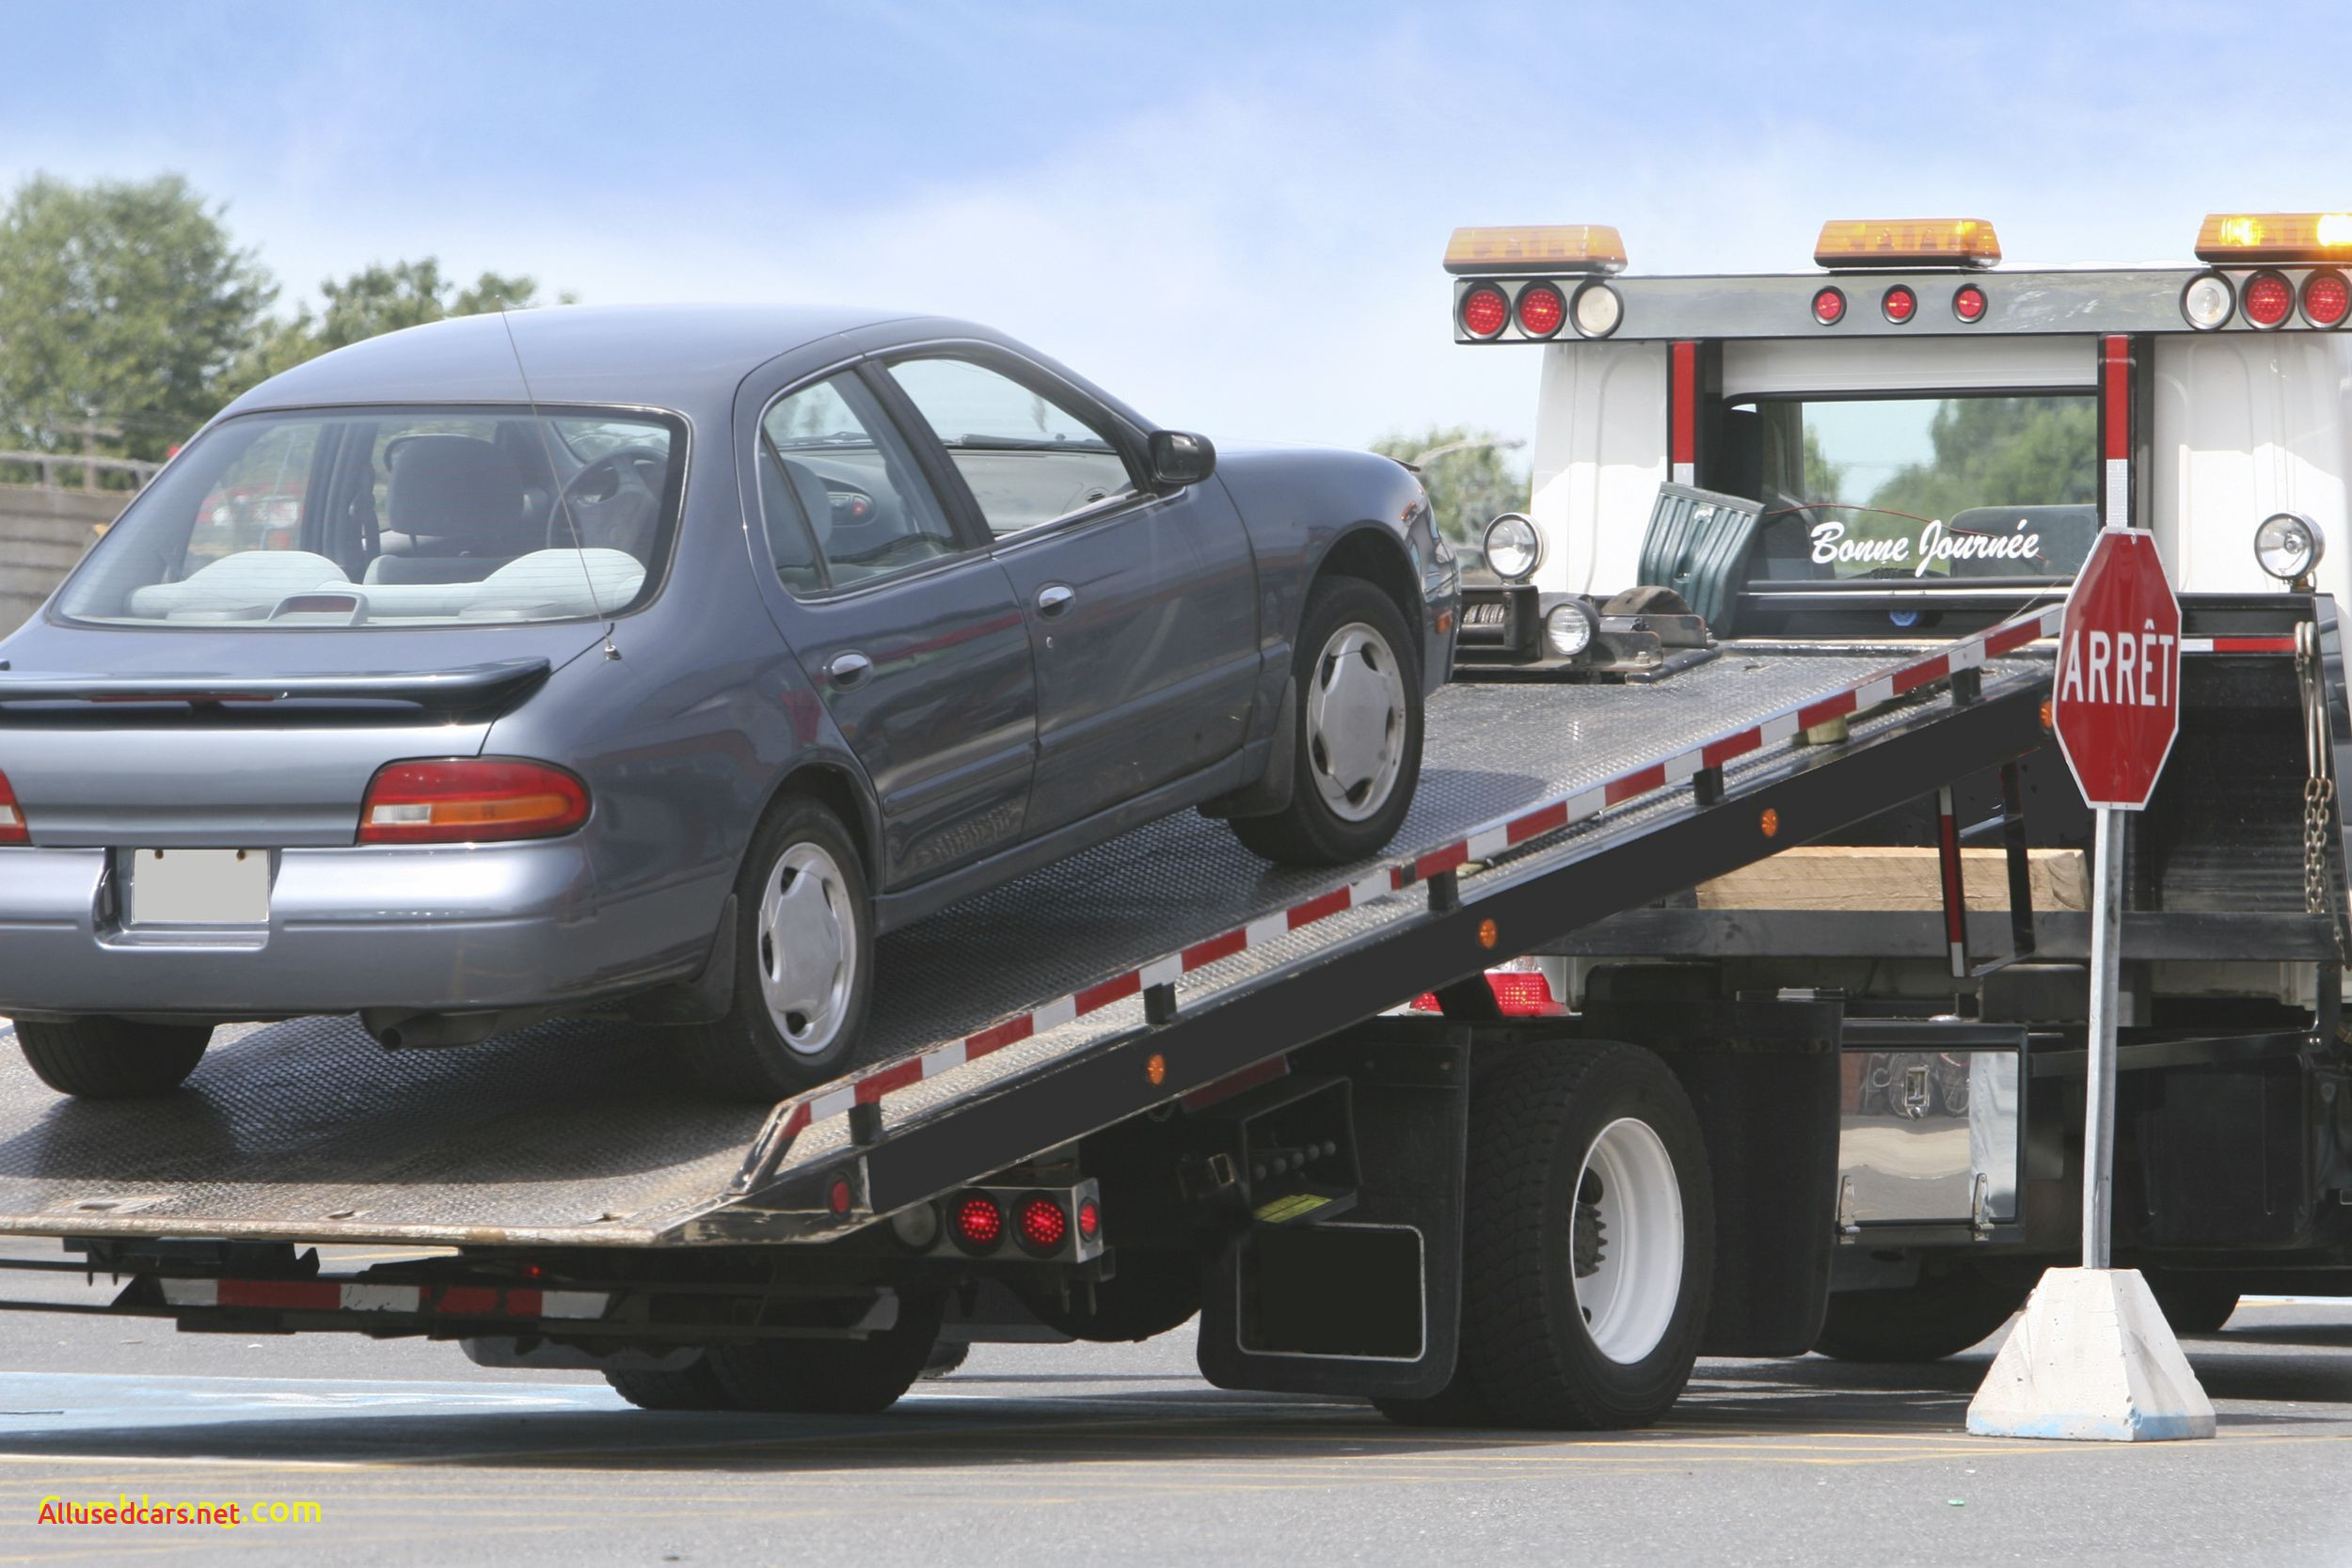 Awesome Repossessed Cars for Sale Near Me Best Of New Cars for Sale Near Me Let Go